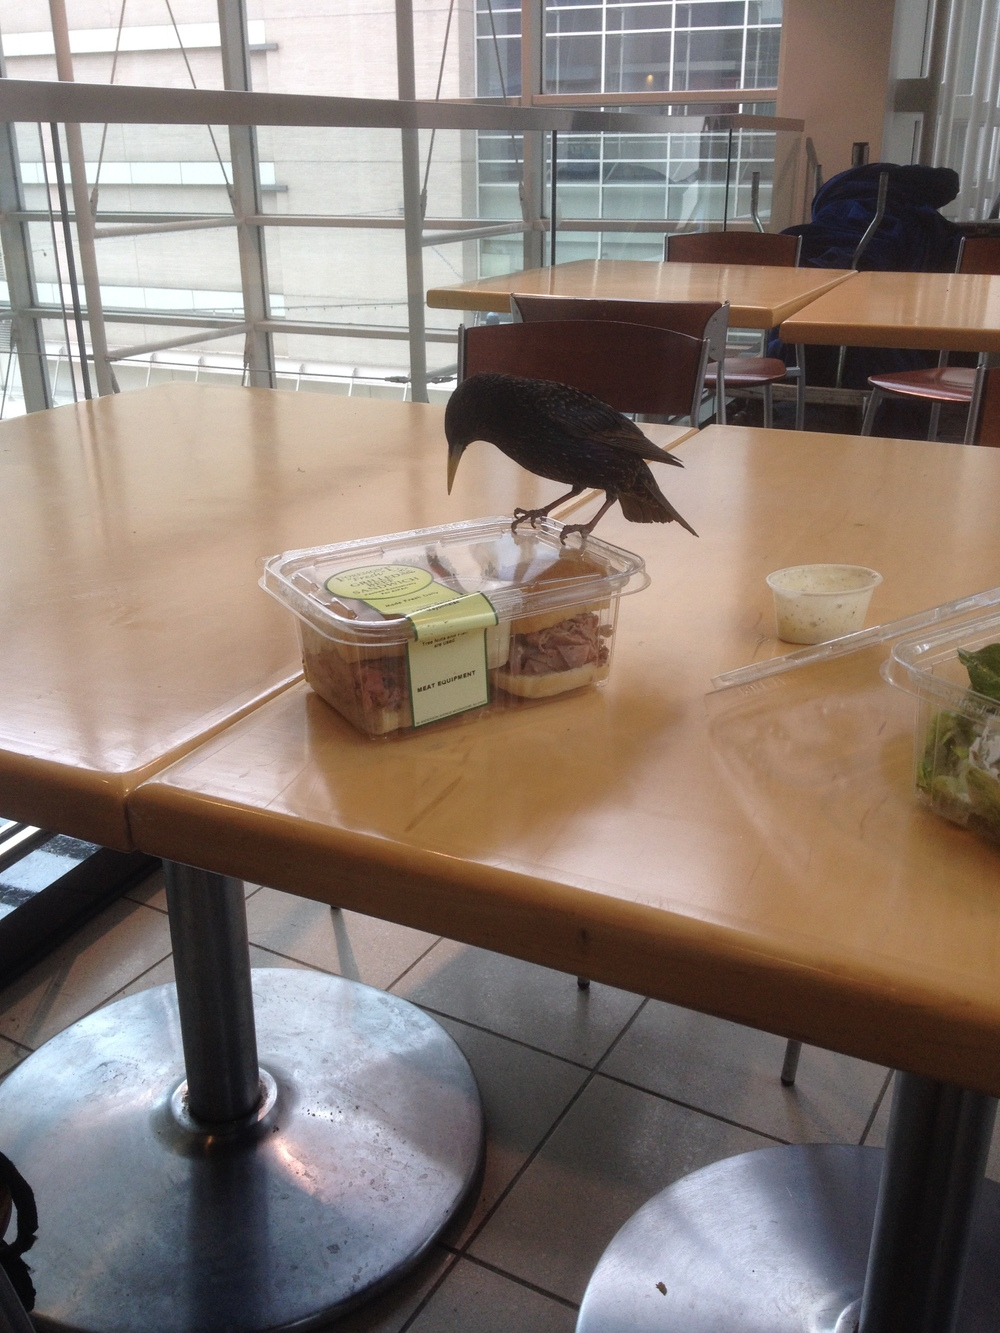 A bird sets its sights on a roast beef sandwich at the AIPAC conference. Credit: Jacob Kamaras.